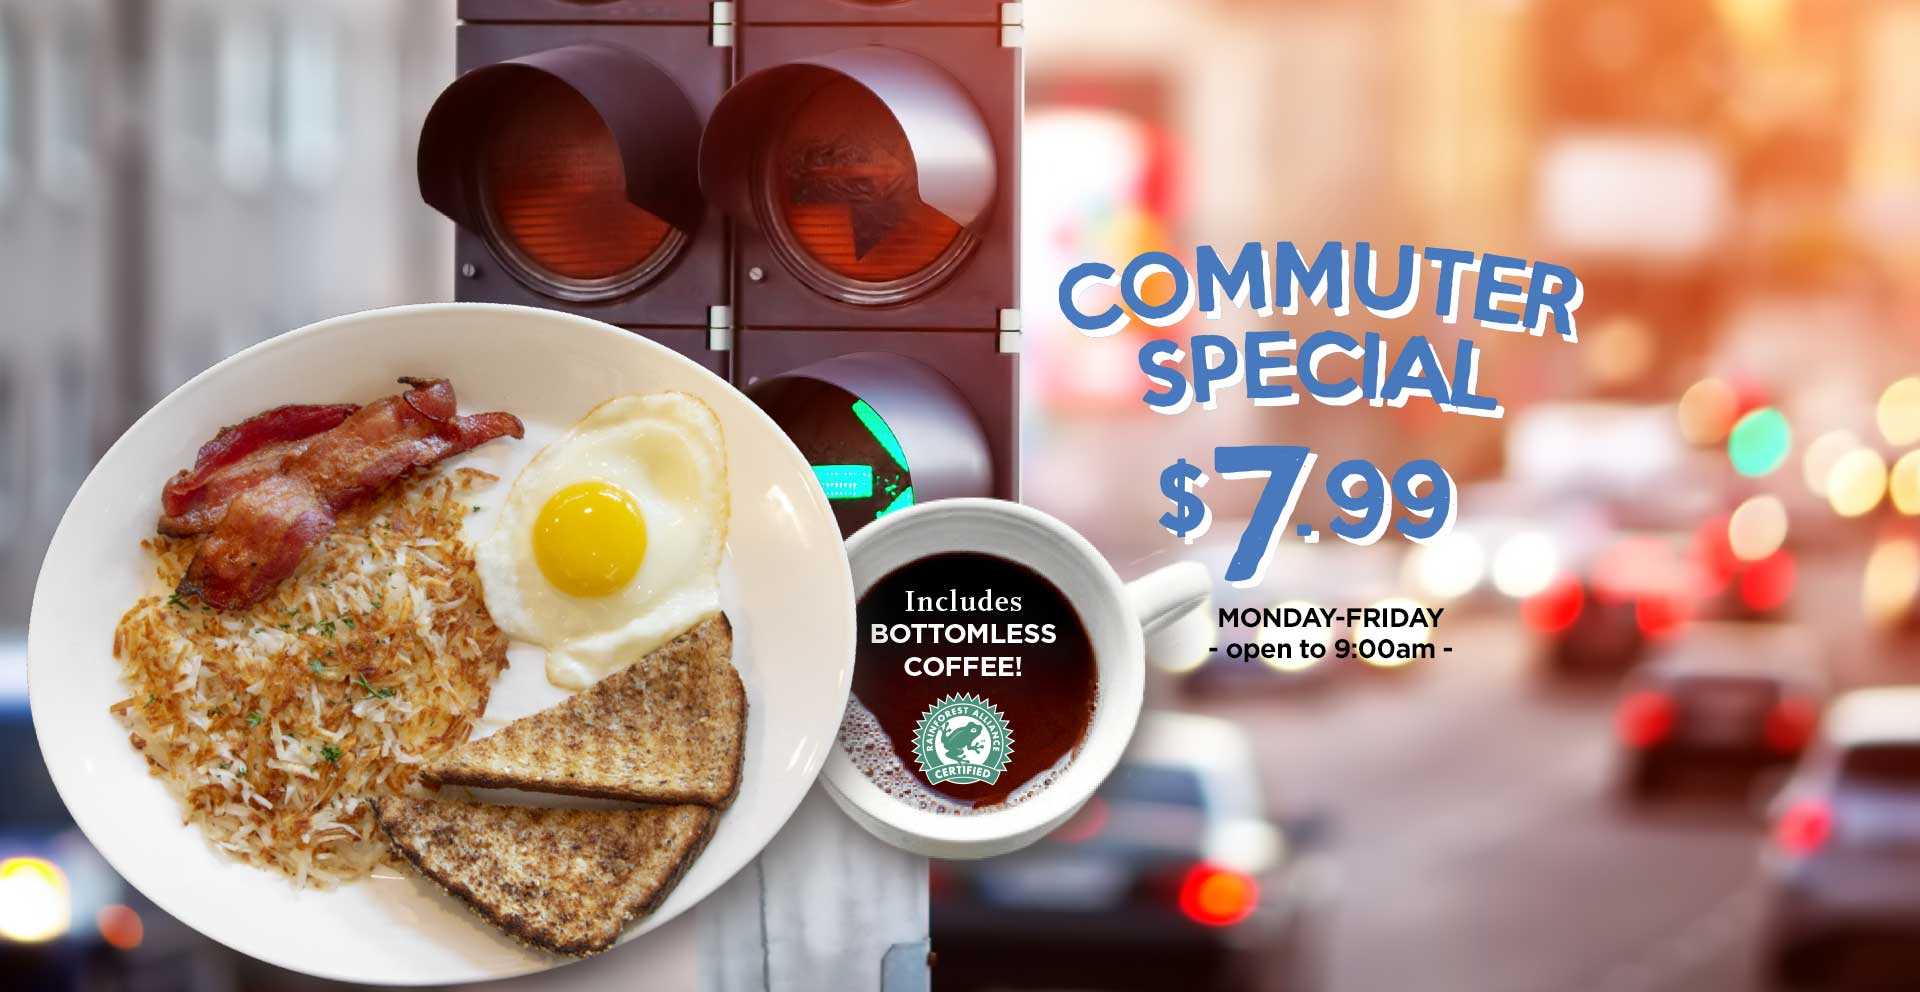 1 egg, 2 strips of maple bacon, shredded hashbrowns and 1 slice of toast – all for just $7.99. And includes bottomless coffee!